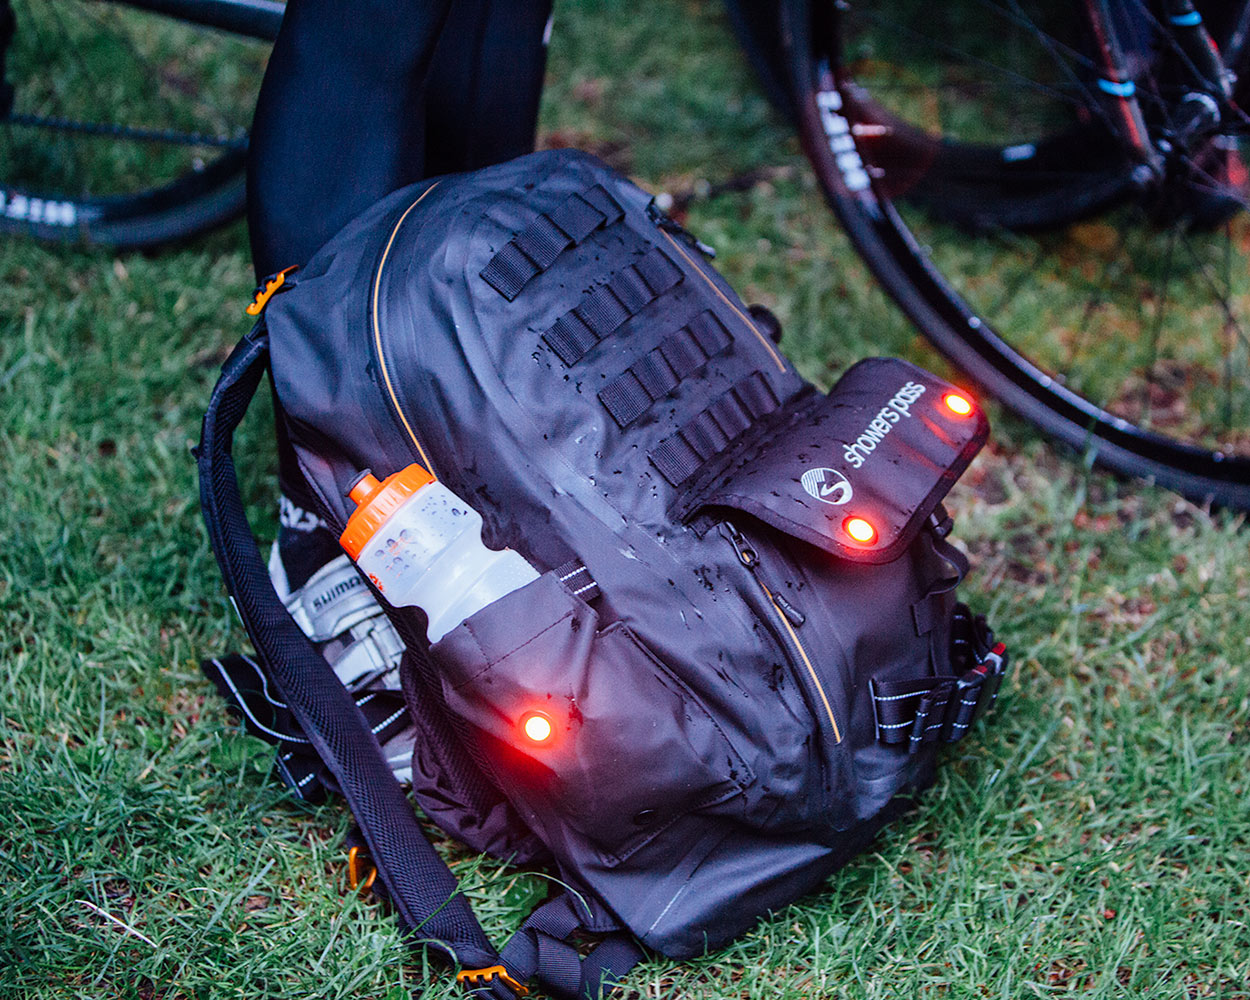 Waterproof-Utility-Backpack-with-lights-bike-race